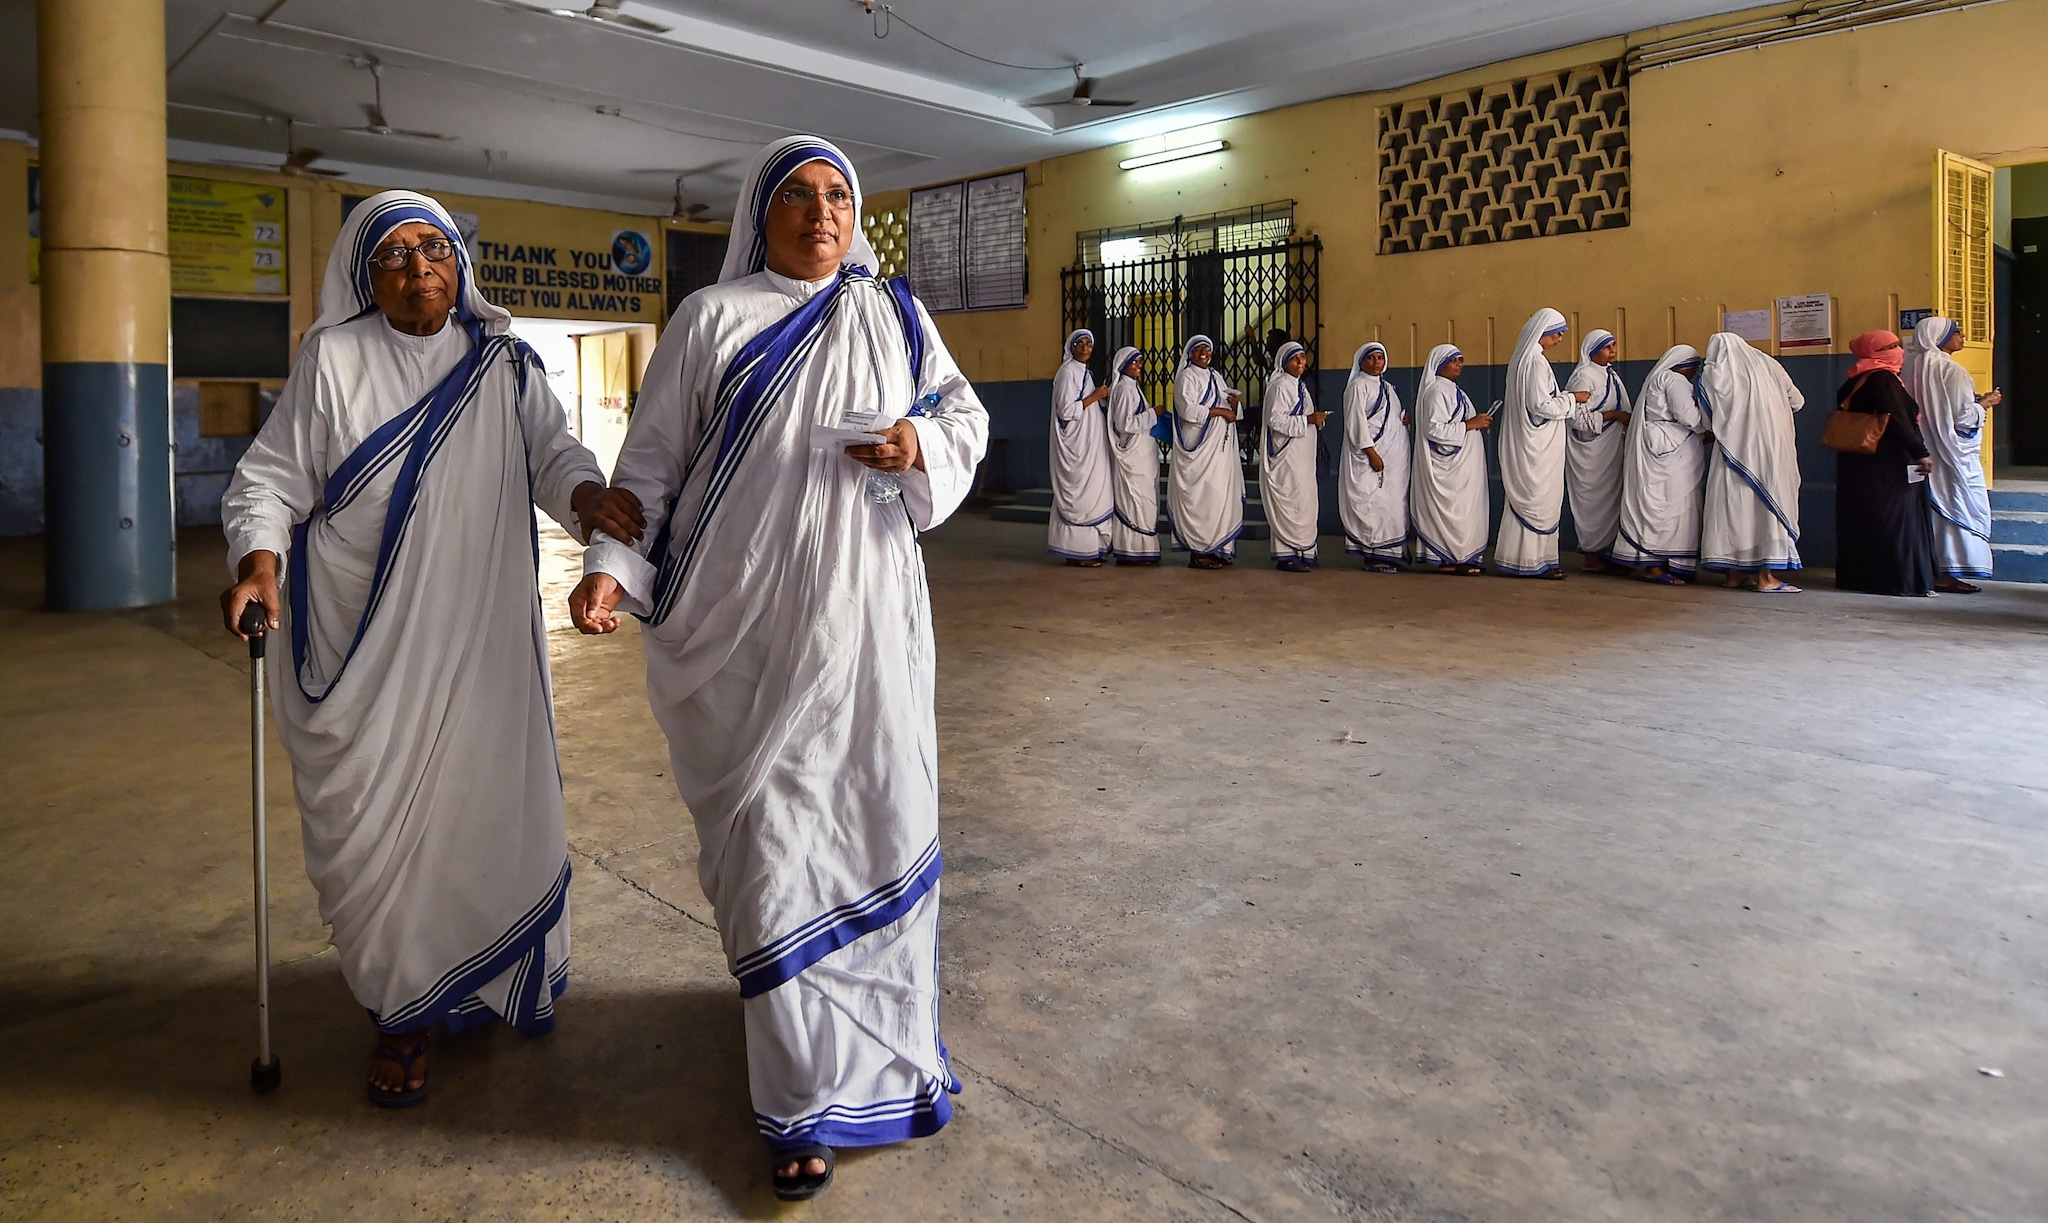 An elderly nun is assisted by the other nun as she arrives to cast her vote at a polling station during the seventh phase of Lok Sabha elections, in Kolkata, Sunday, May 19, 2019. (PTI Photo)